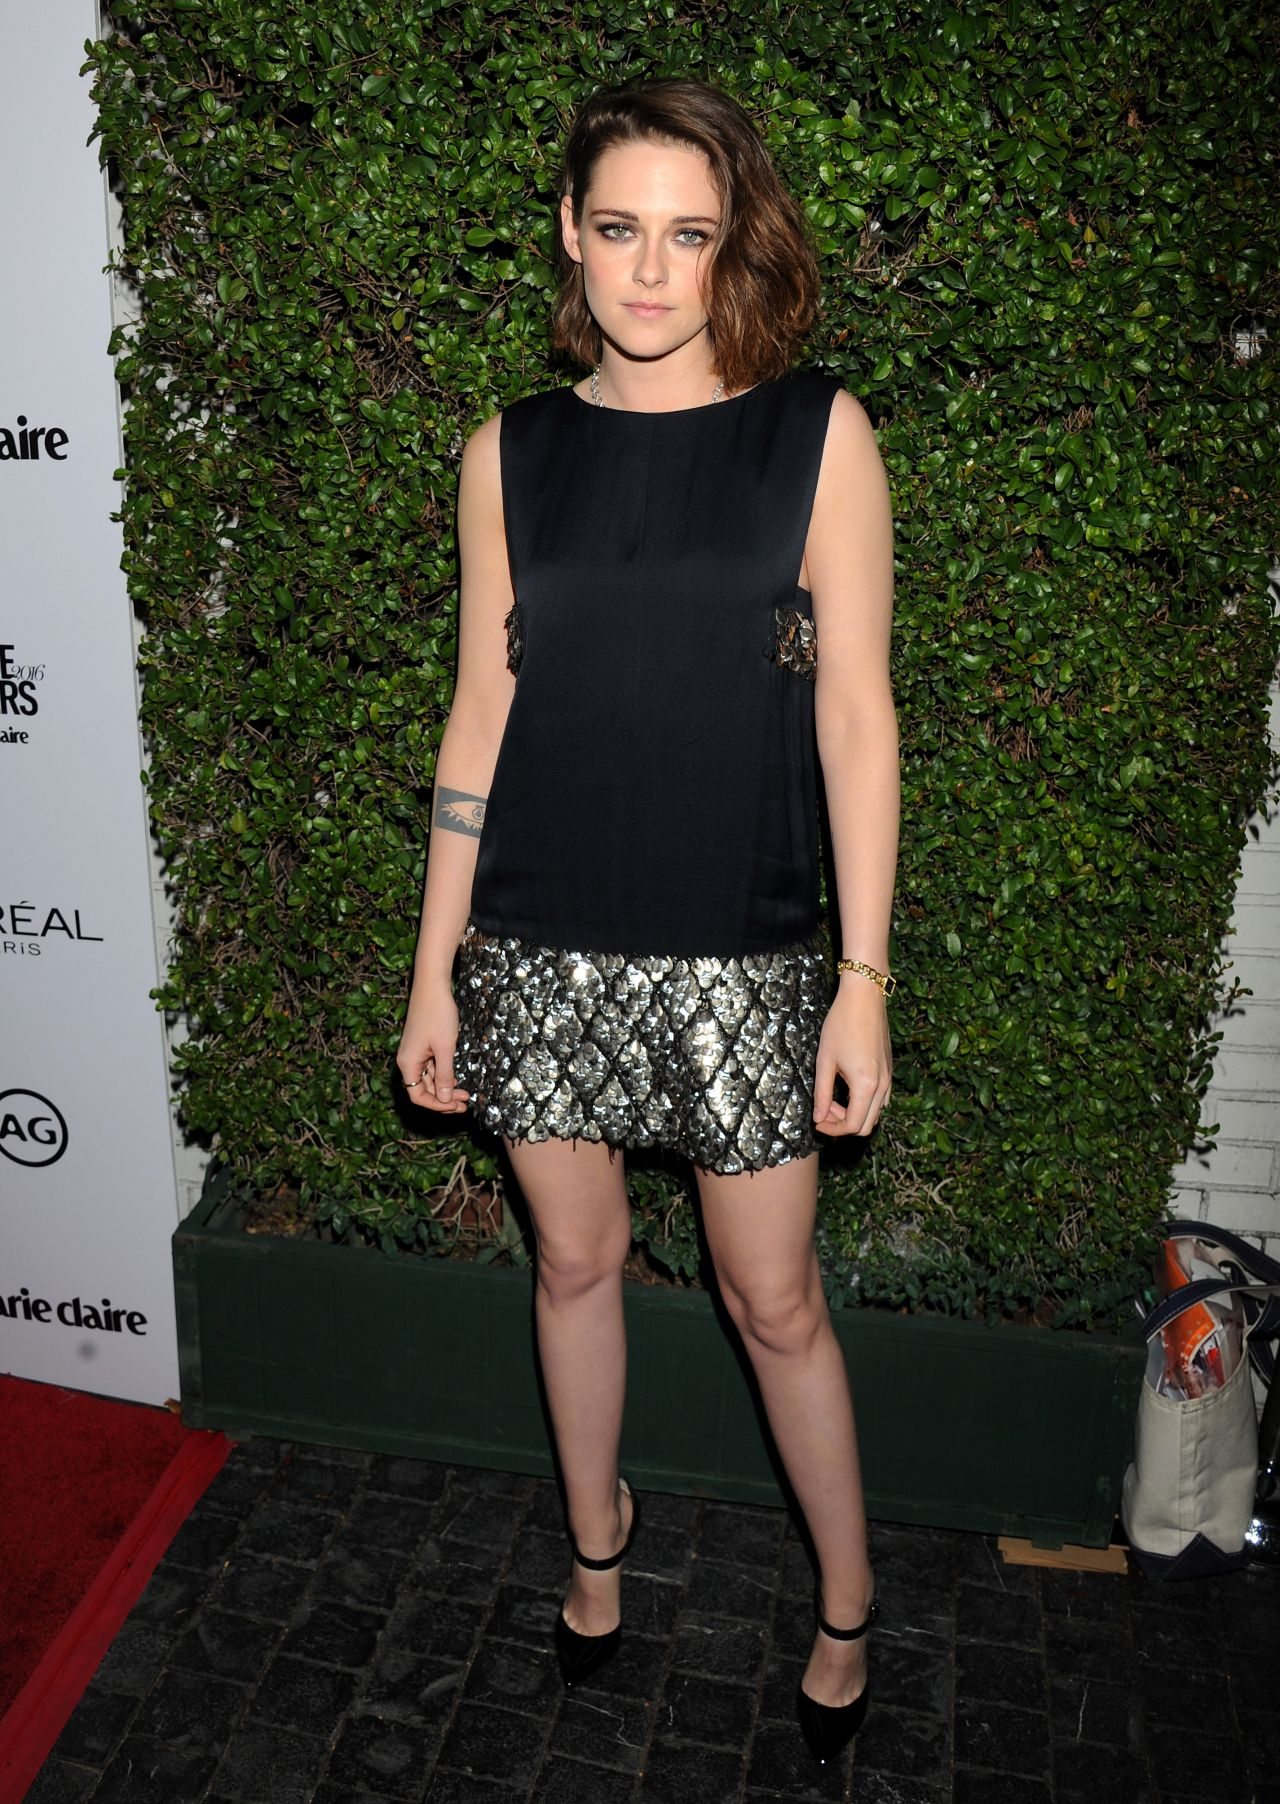 kristen-stewart-inaugural-image-maker-awards-hosted-by-marie-claire-in-los-angeles-1-12-2016-2